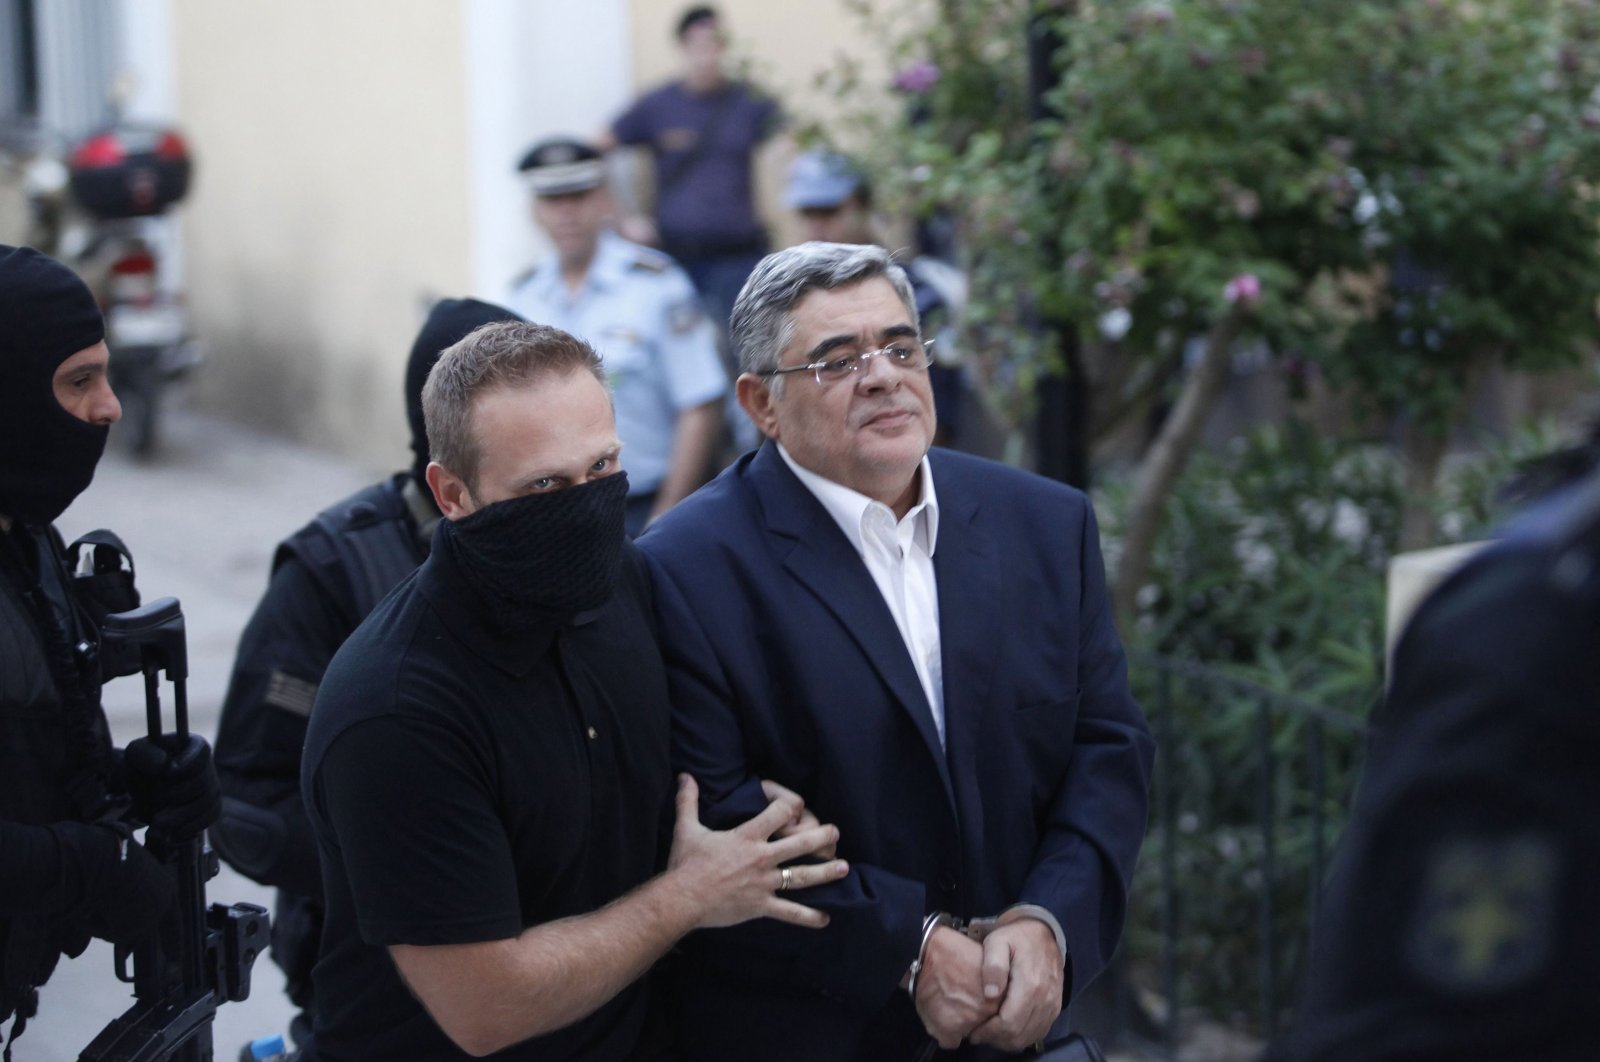 Far-right Golden Dawn party leader Nikos Mihaloliakos (R) is escorted by anti-terrorism police officers as he arrives at a courthouse in Athens, Greece, Sept. 28, 2013. (Reuters Photo)